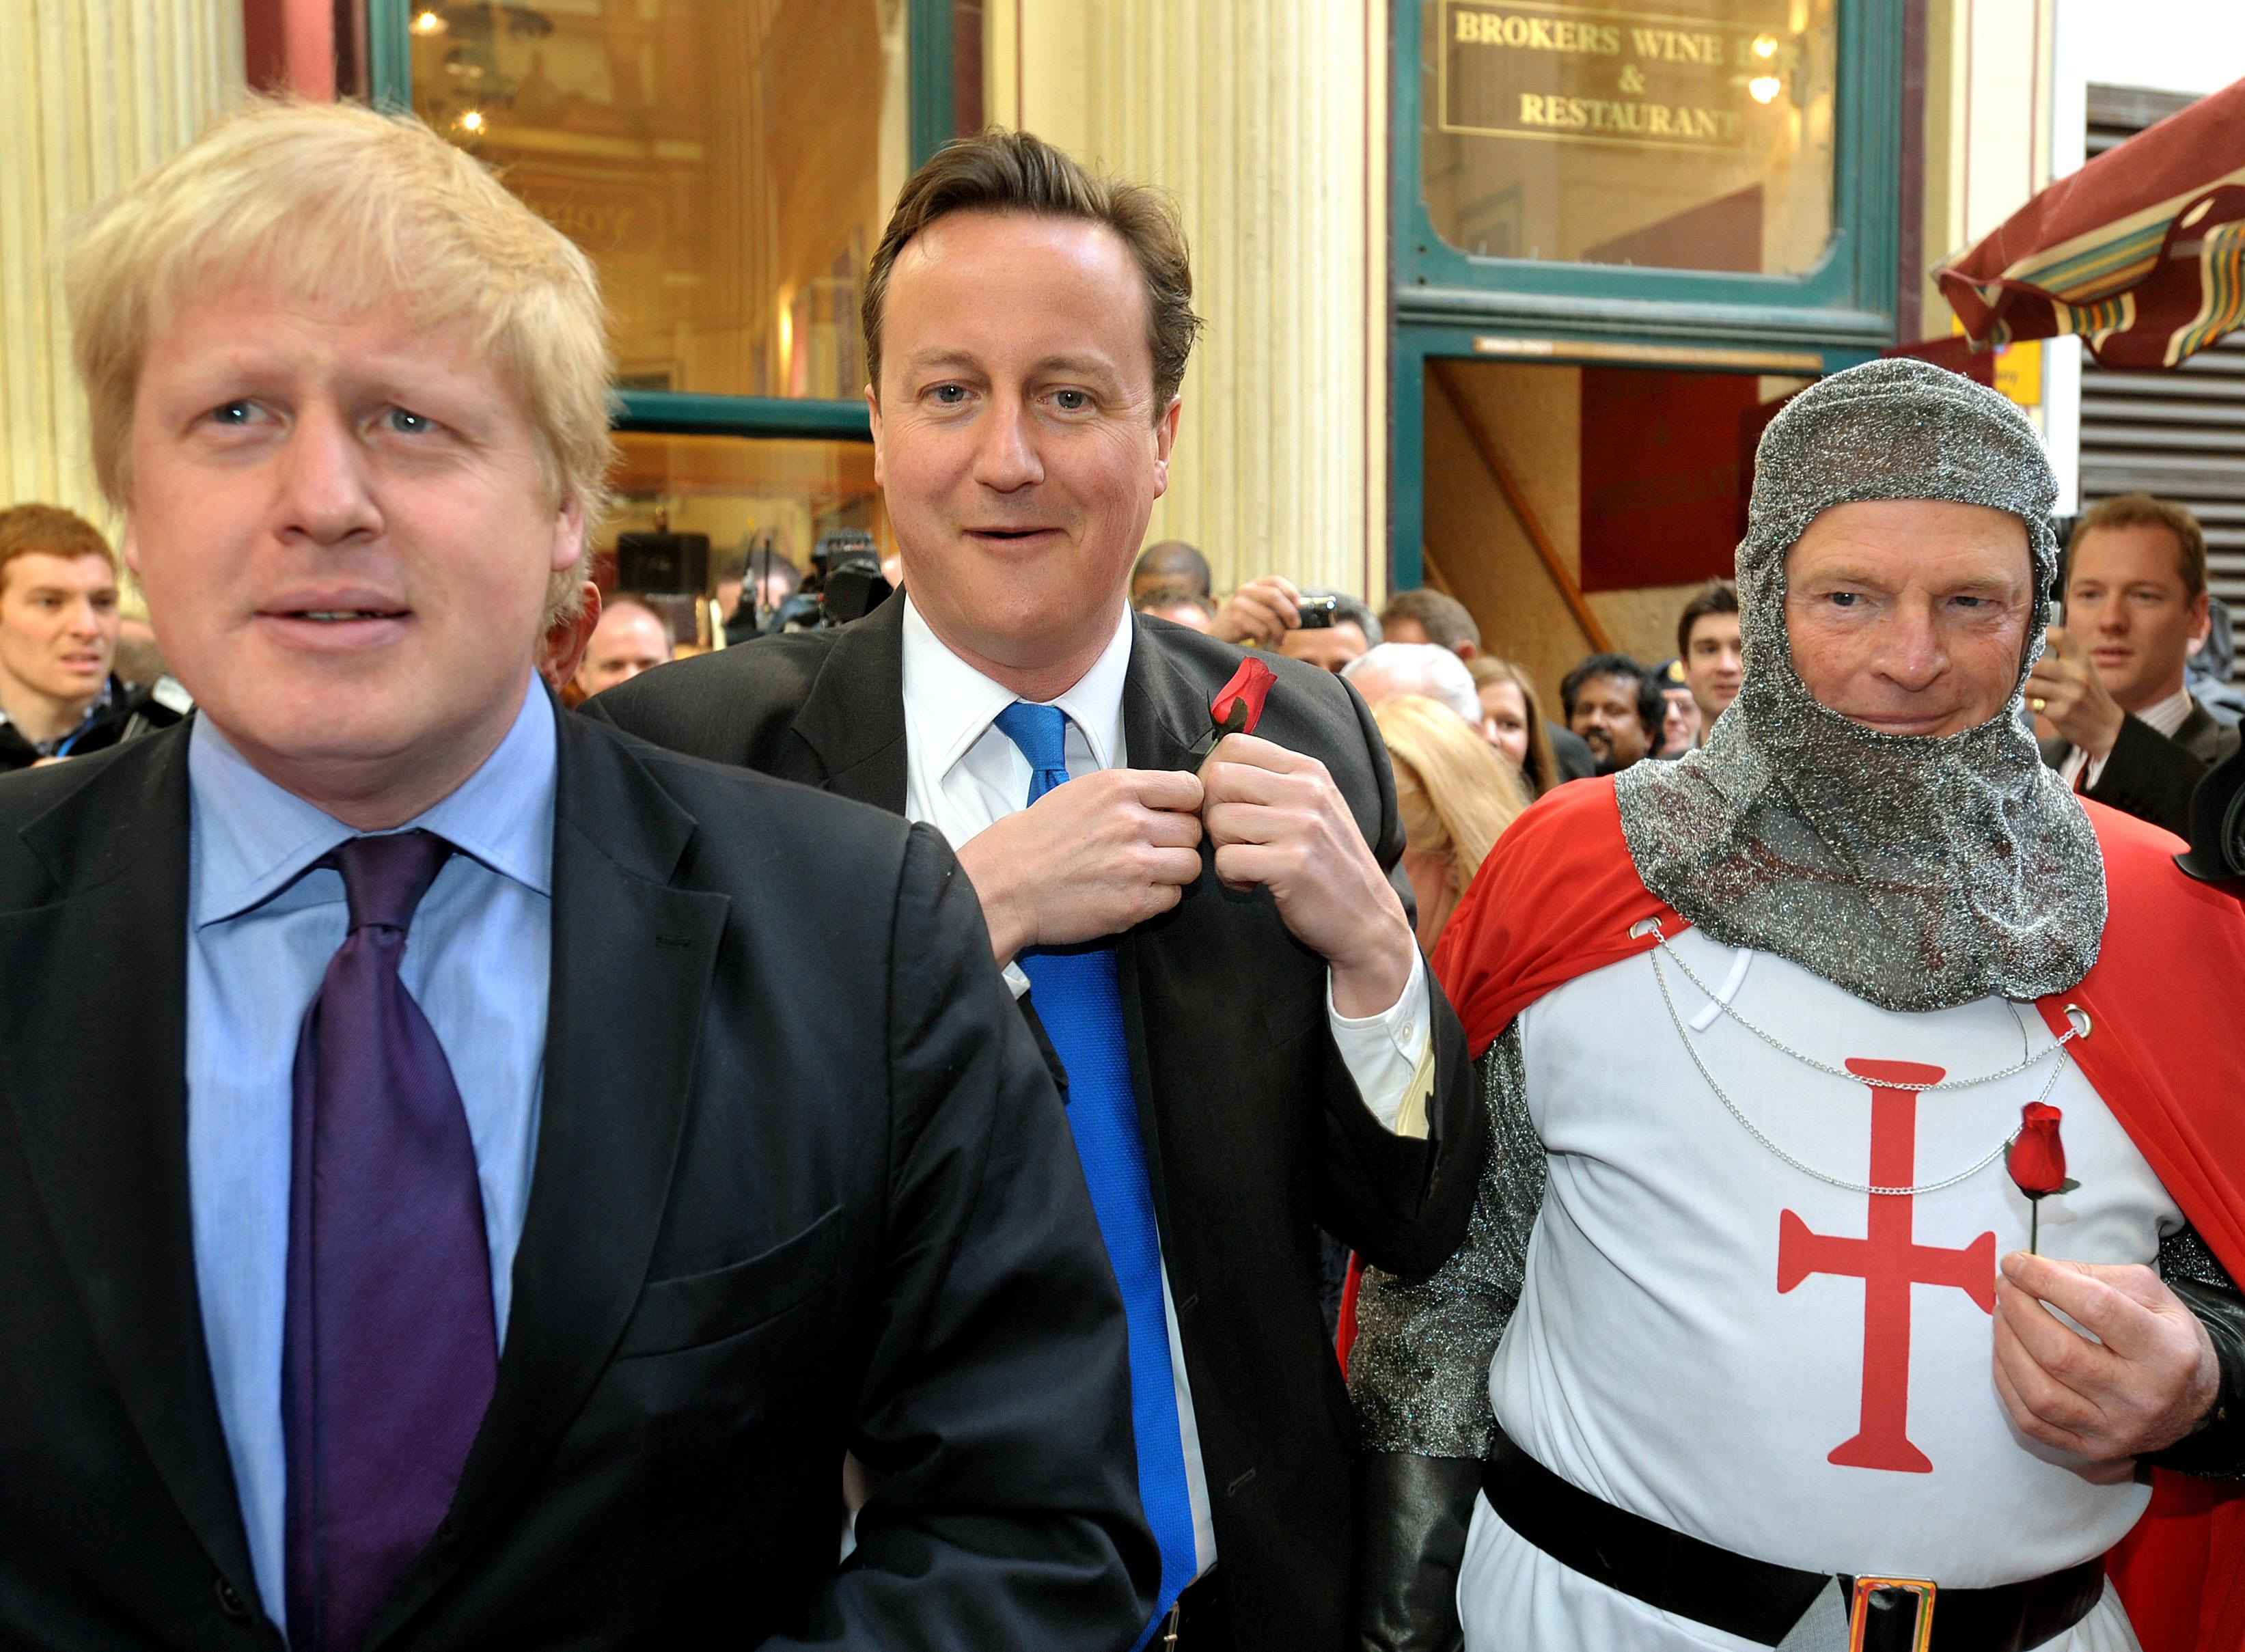 Leader of the Conservative Party David Cameron (centre) with Mayor of London Boris Johnson (left) as they celebrate St George's day in Leadenhall Market in the City of London.